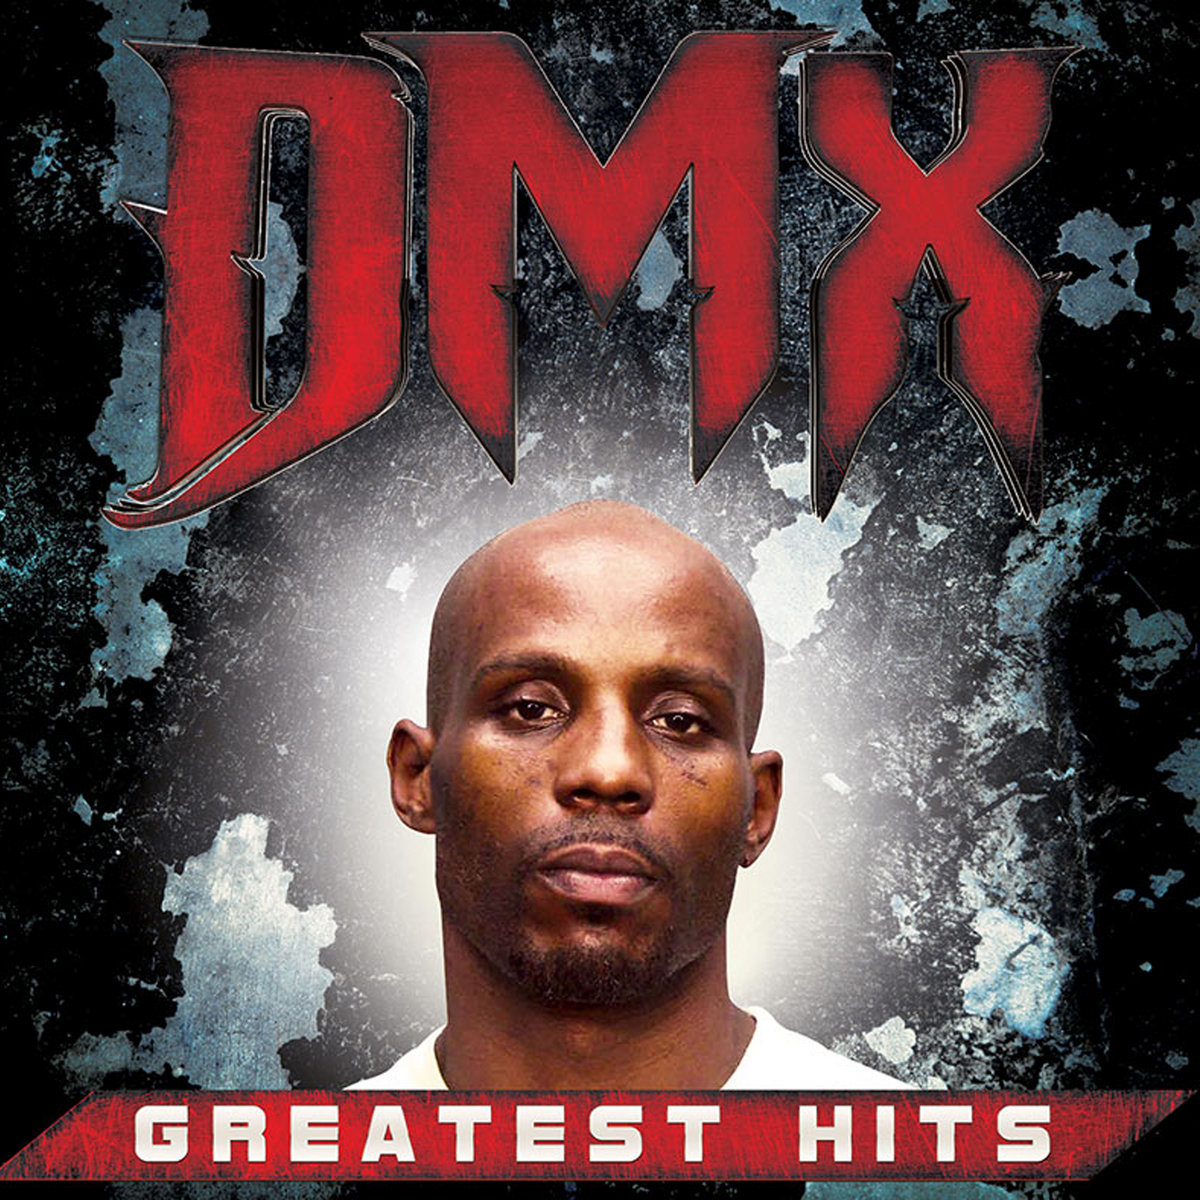 Dmx get it on the floor (official music video) ft. Swizz beatz.